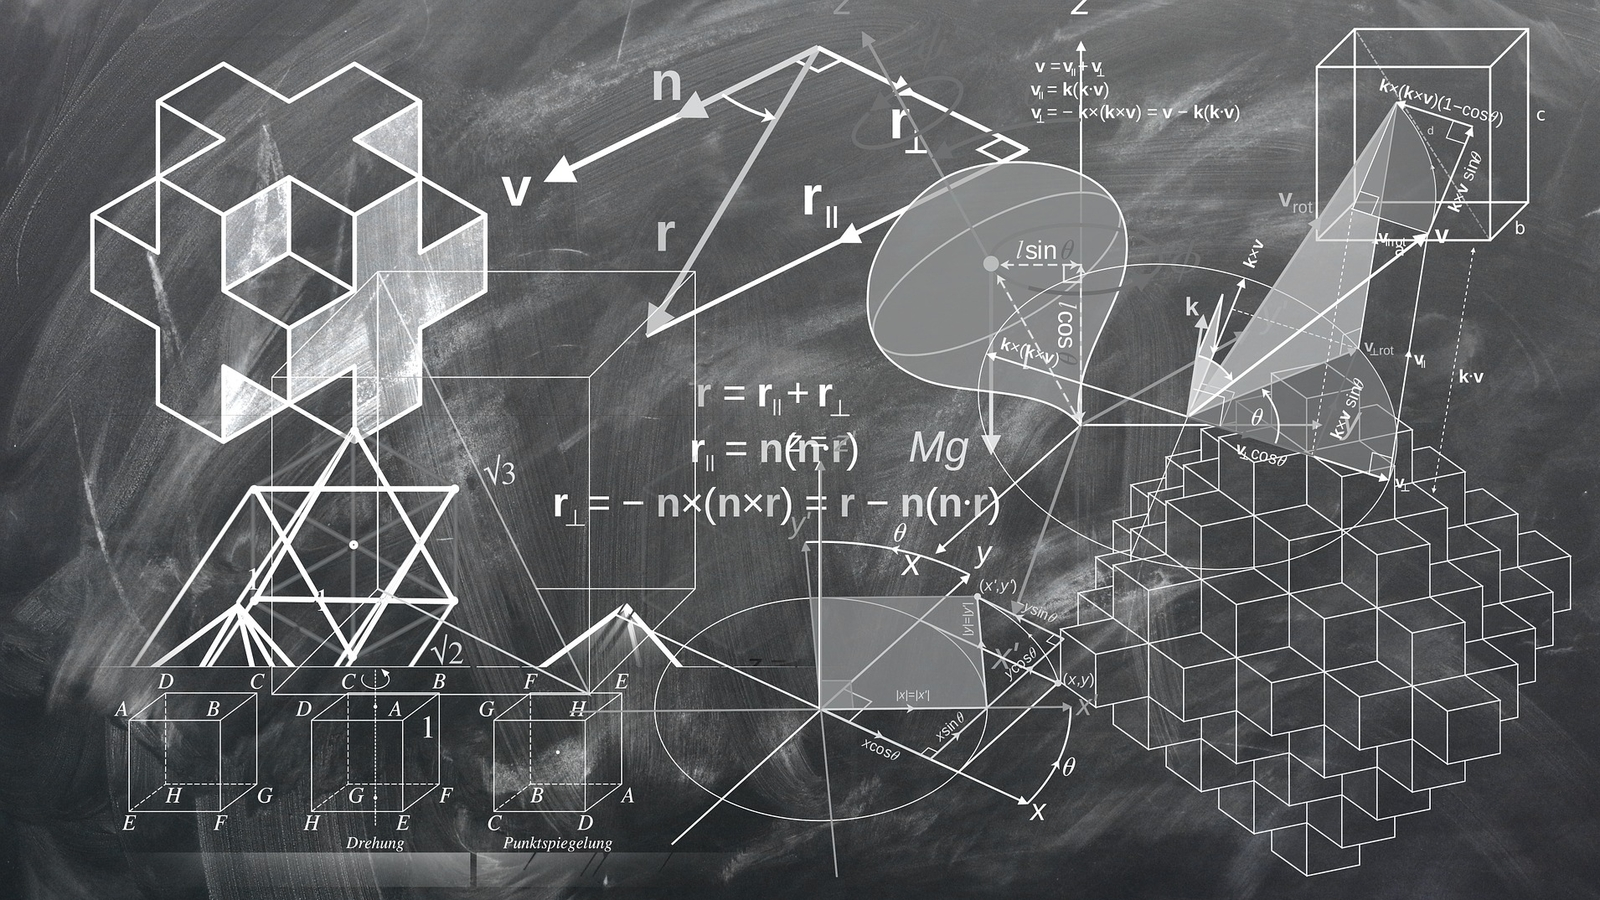 image of math equations and problems on a chalkboard